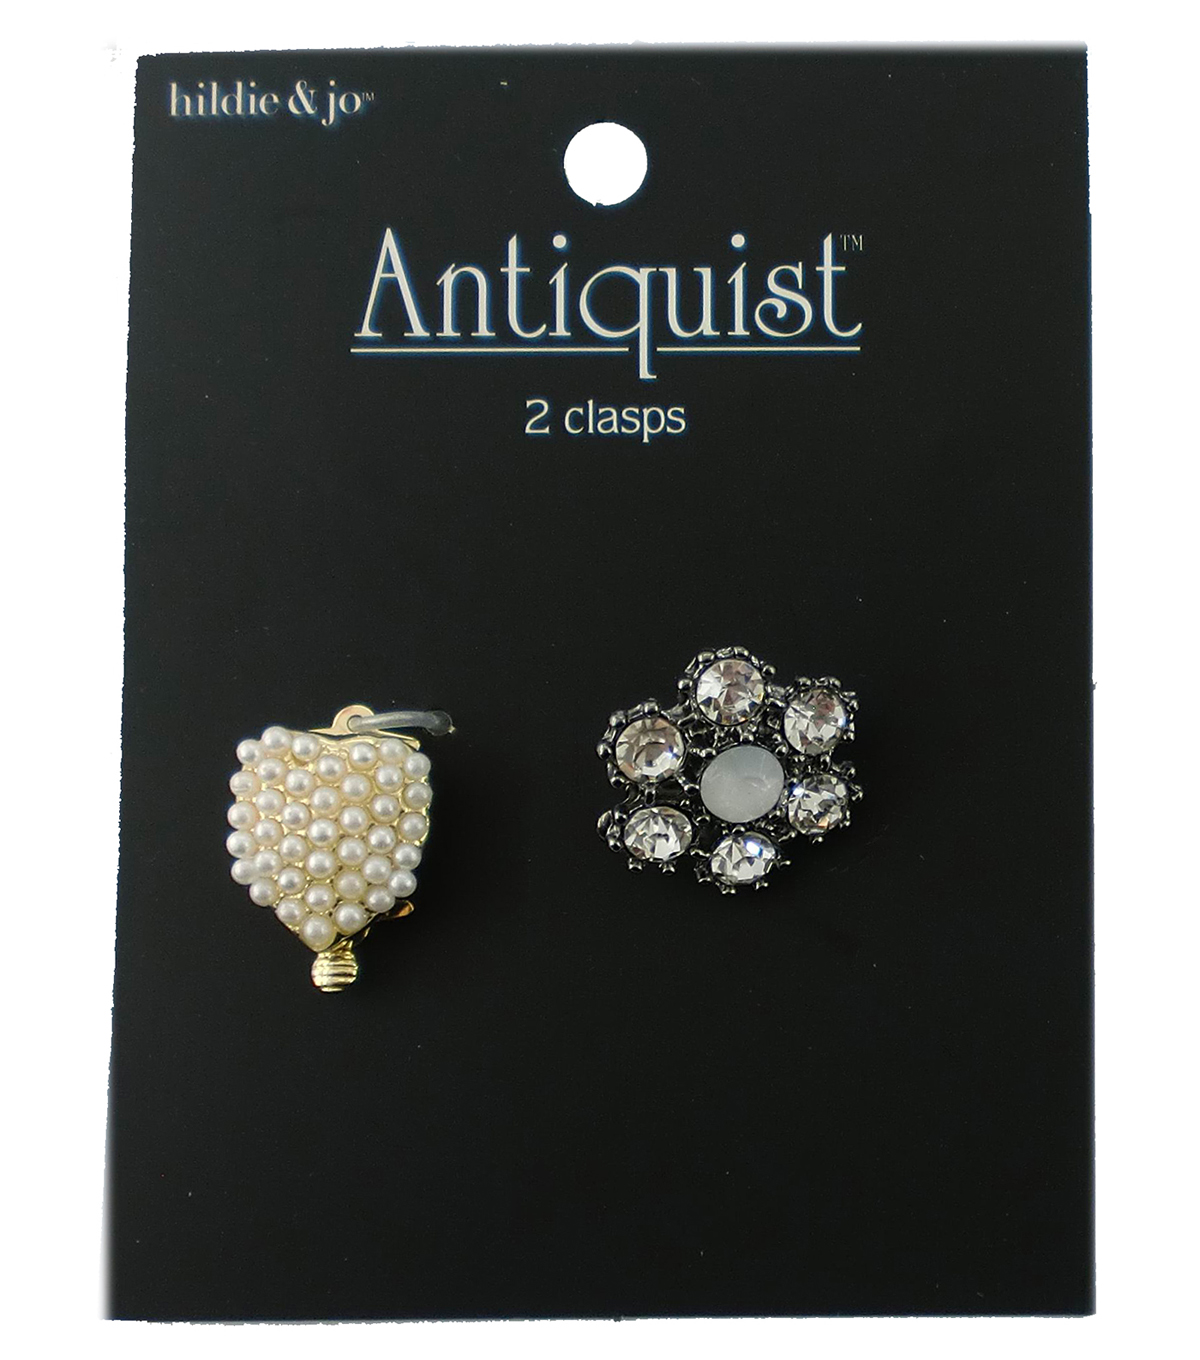 hildie & jo™ Antiquist Heart & Flower Clasps-Pearls & Crystals